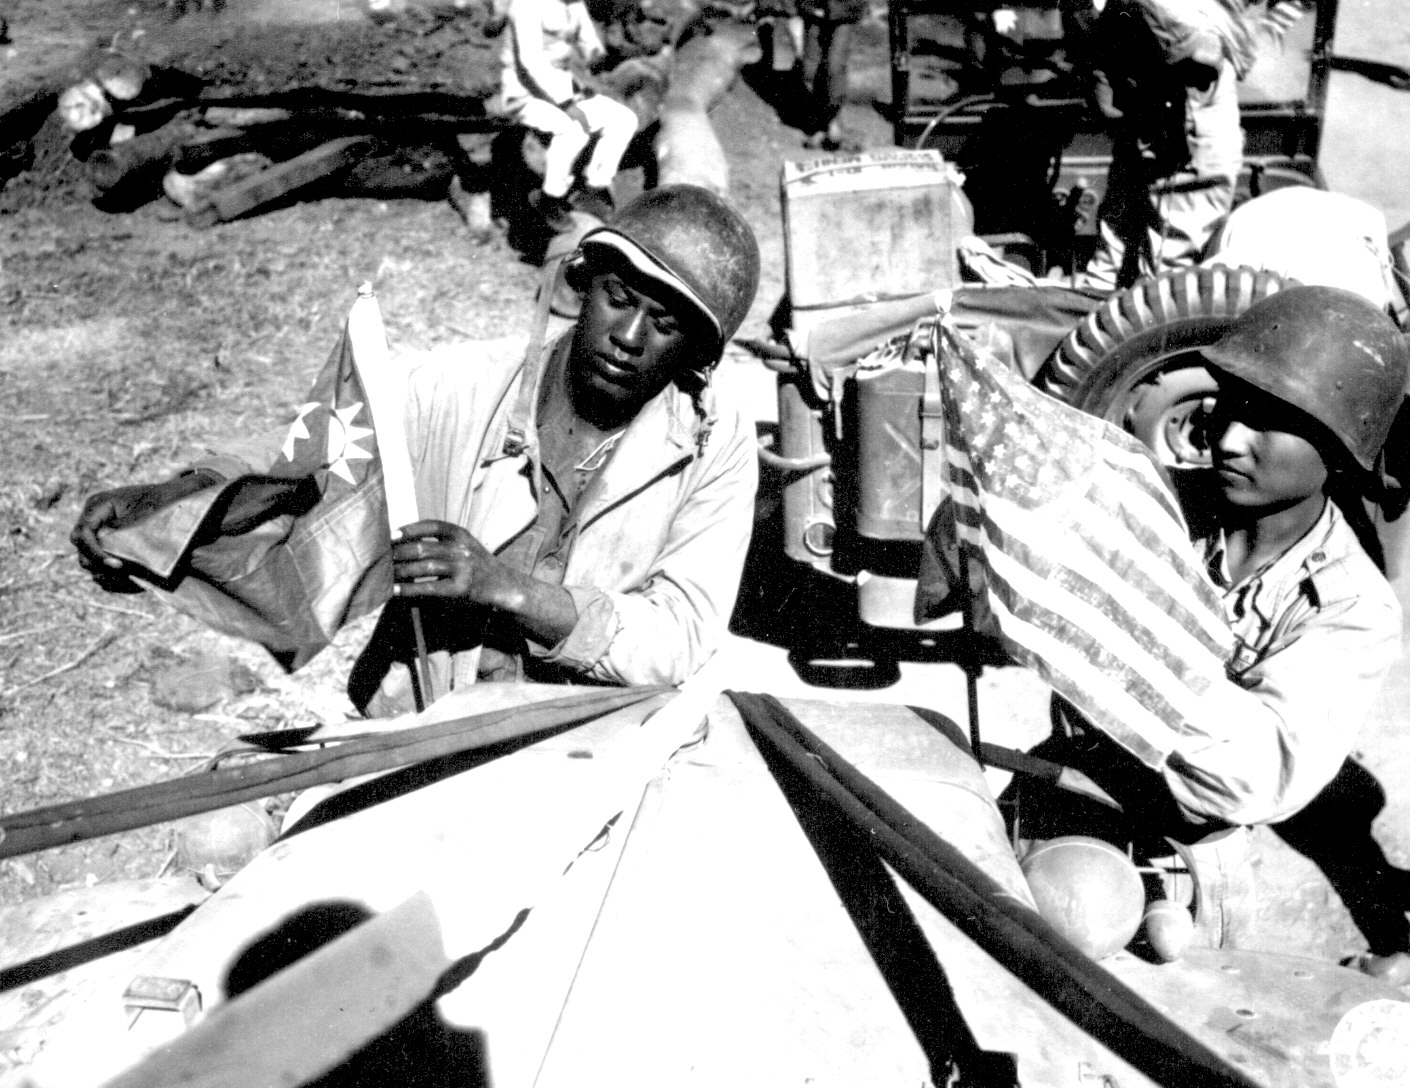 http://www.archives.gov/research/african-americans/ww2-pictures/images/african-americans-wwii-010.jpg